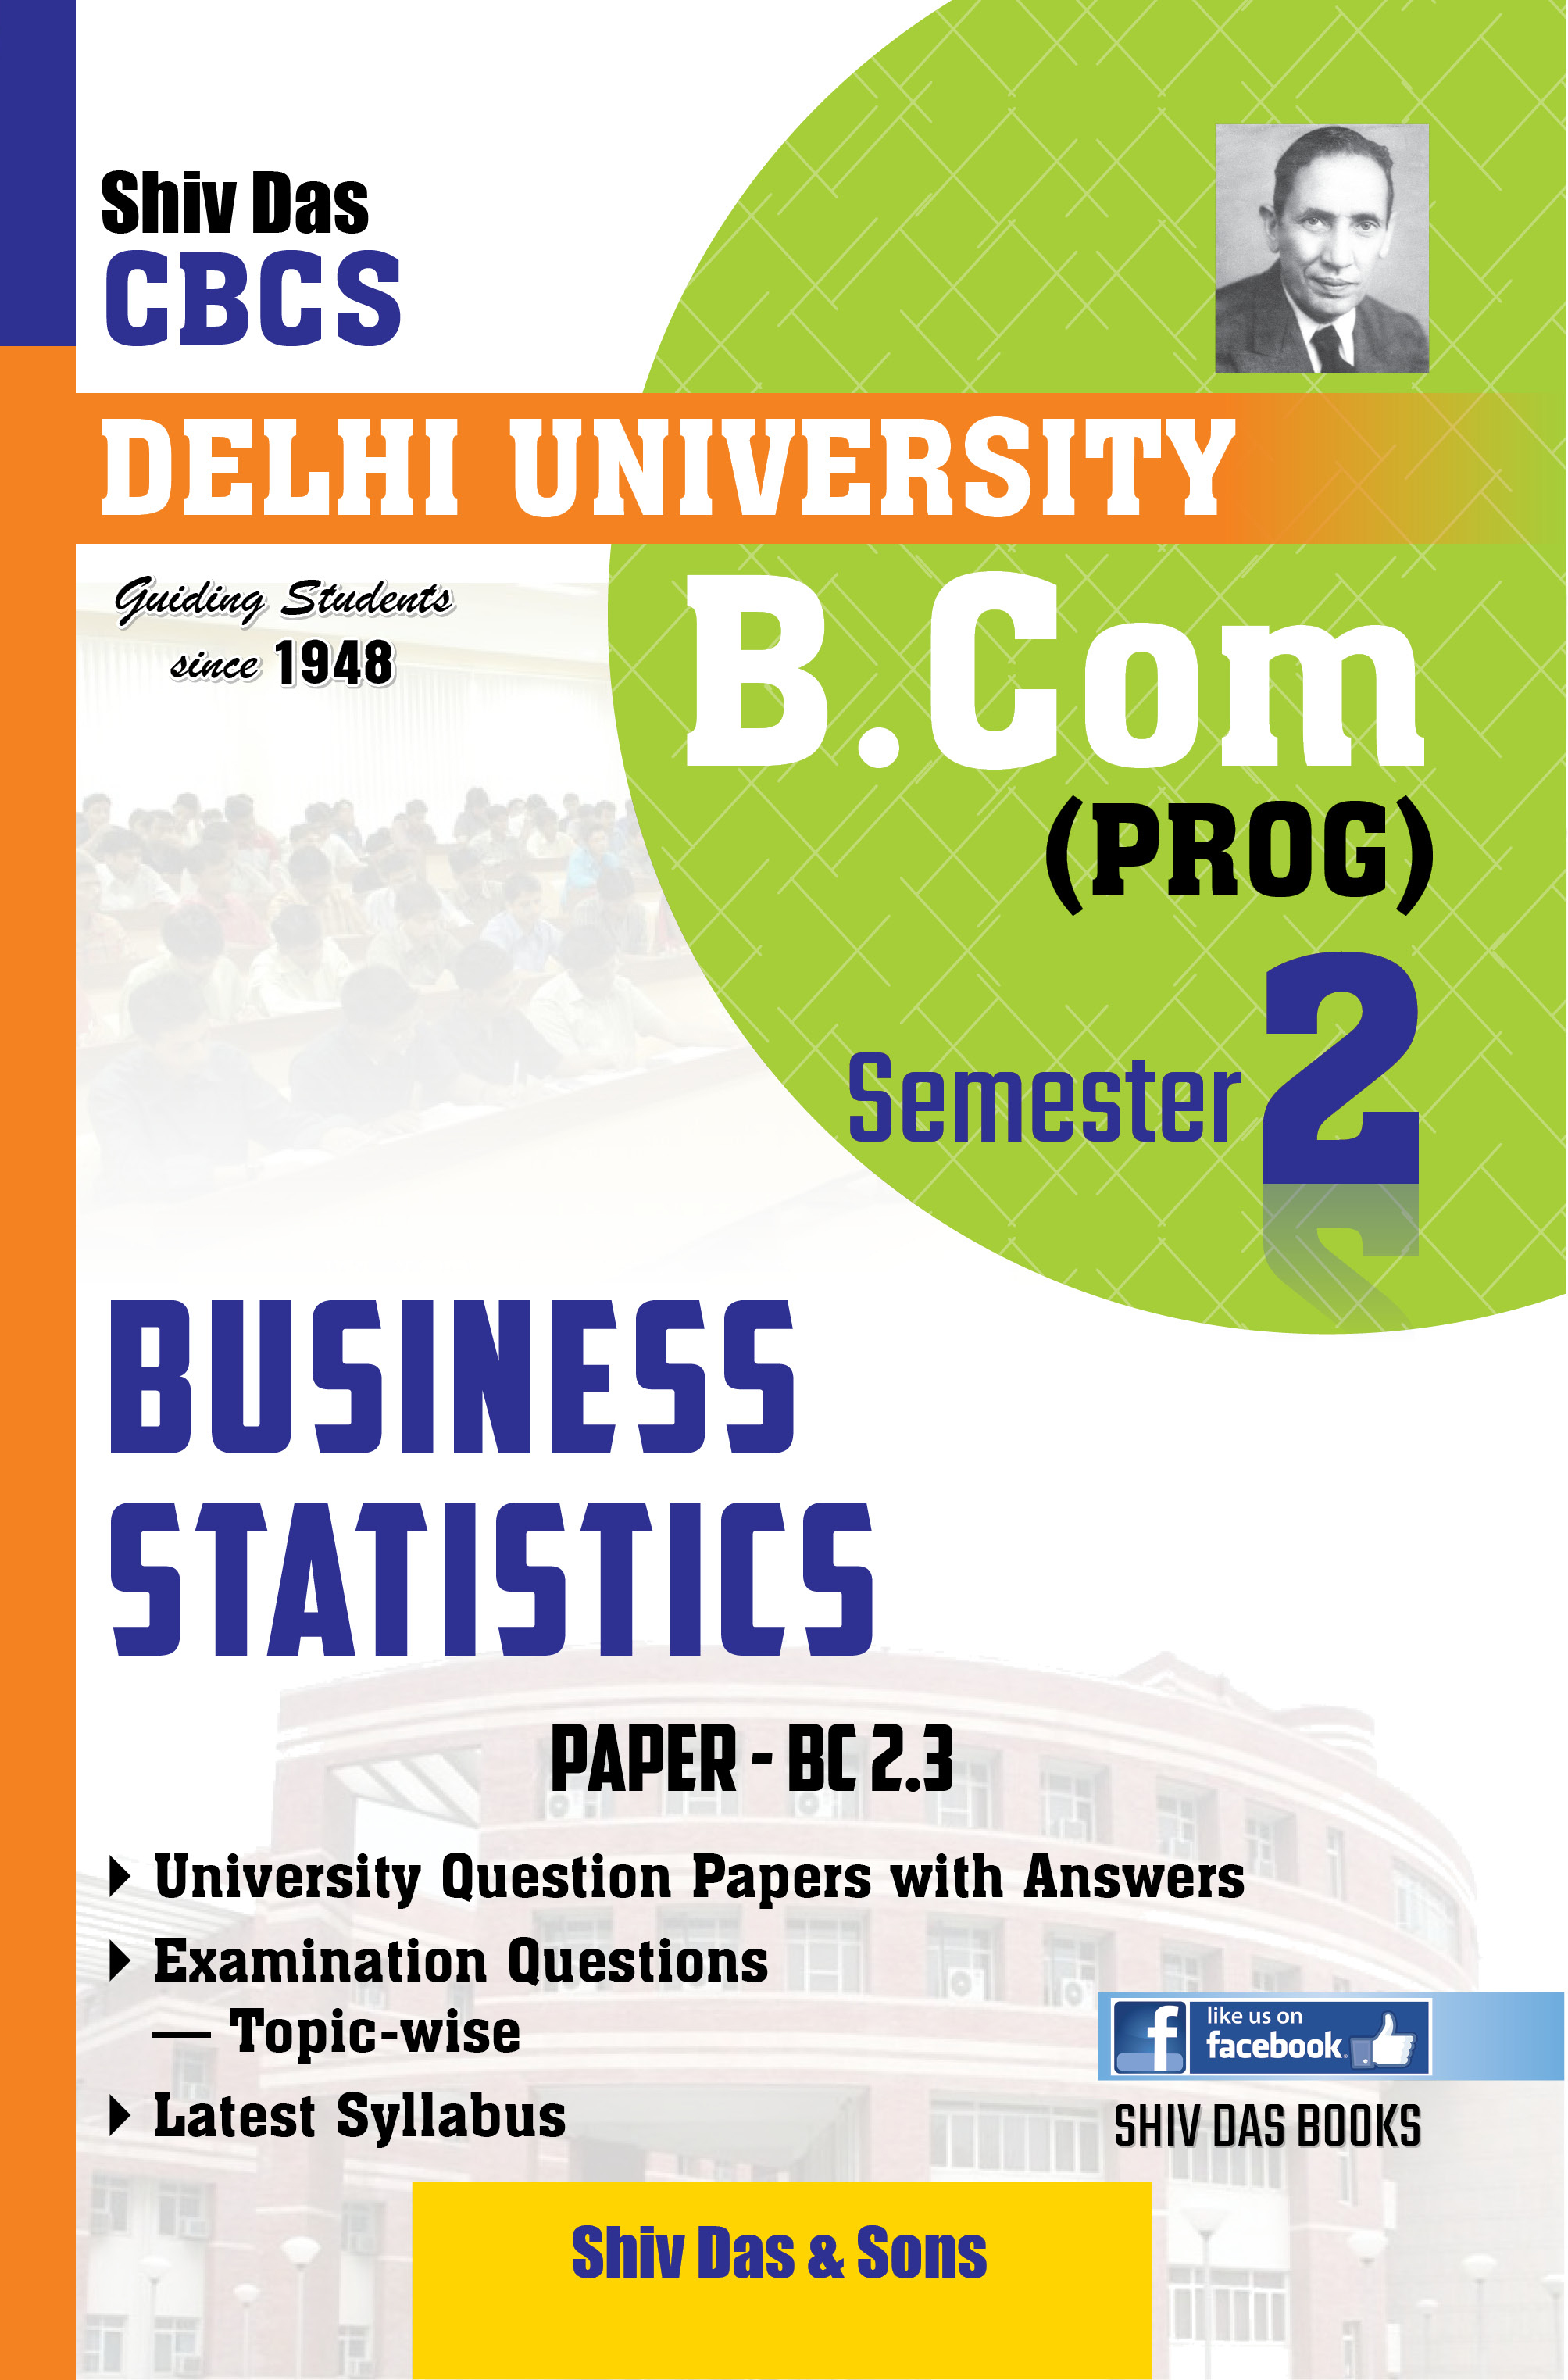 Business Statistics for B.Com Prog Semester-2